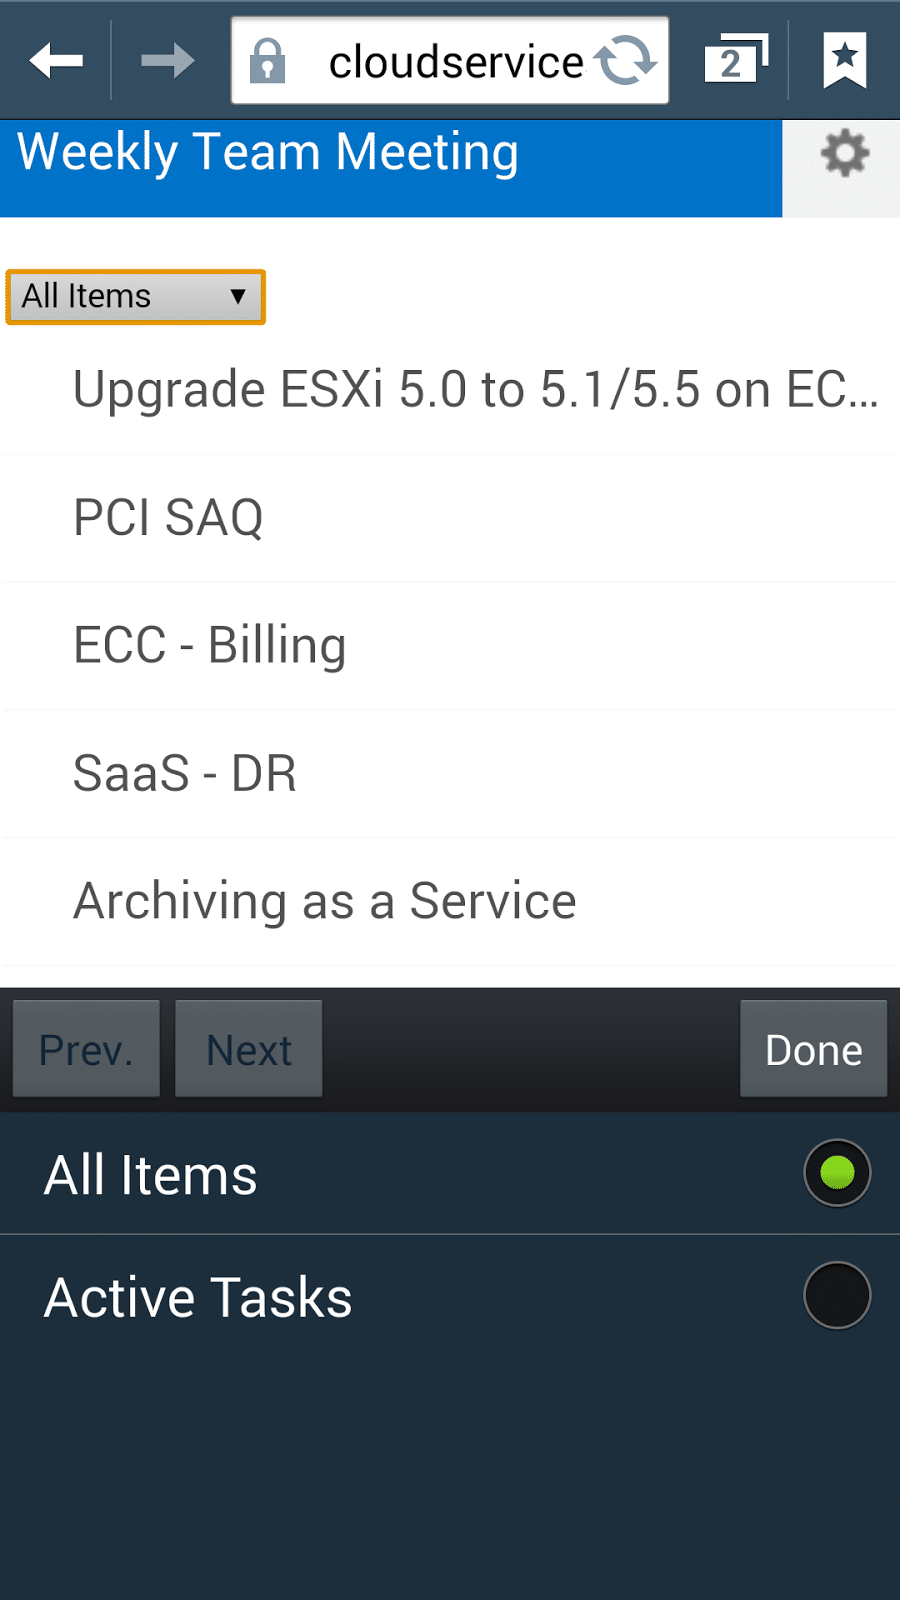 sharepoint 2013 mobile interface